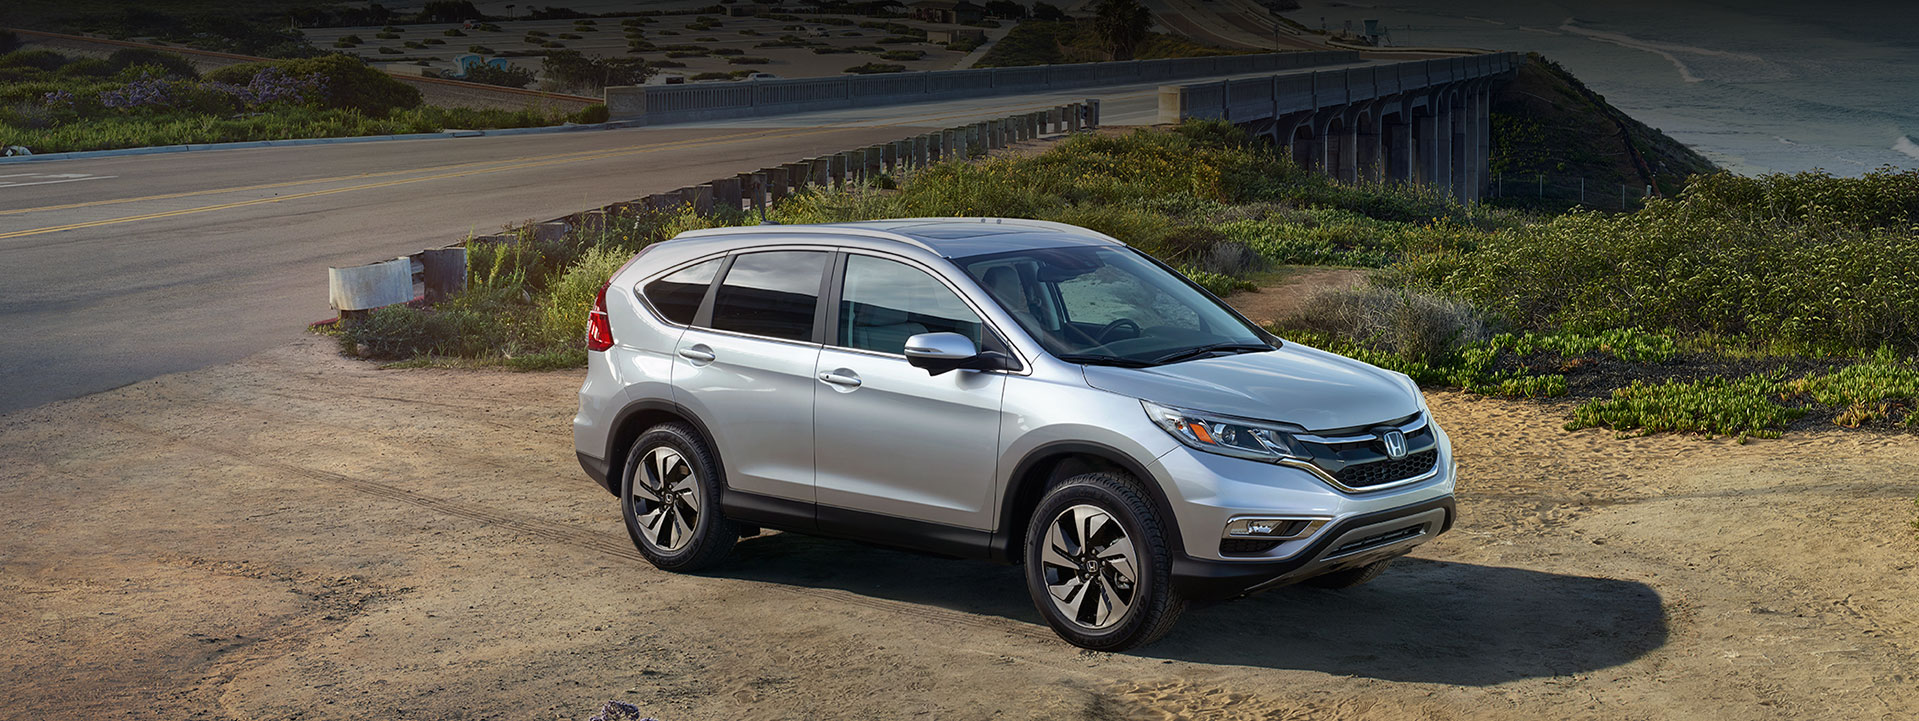 New honda cr v deals in burien wa for Honda cr v incentives